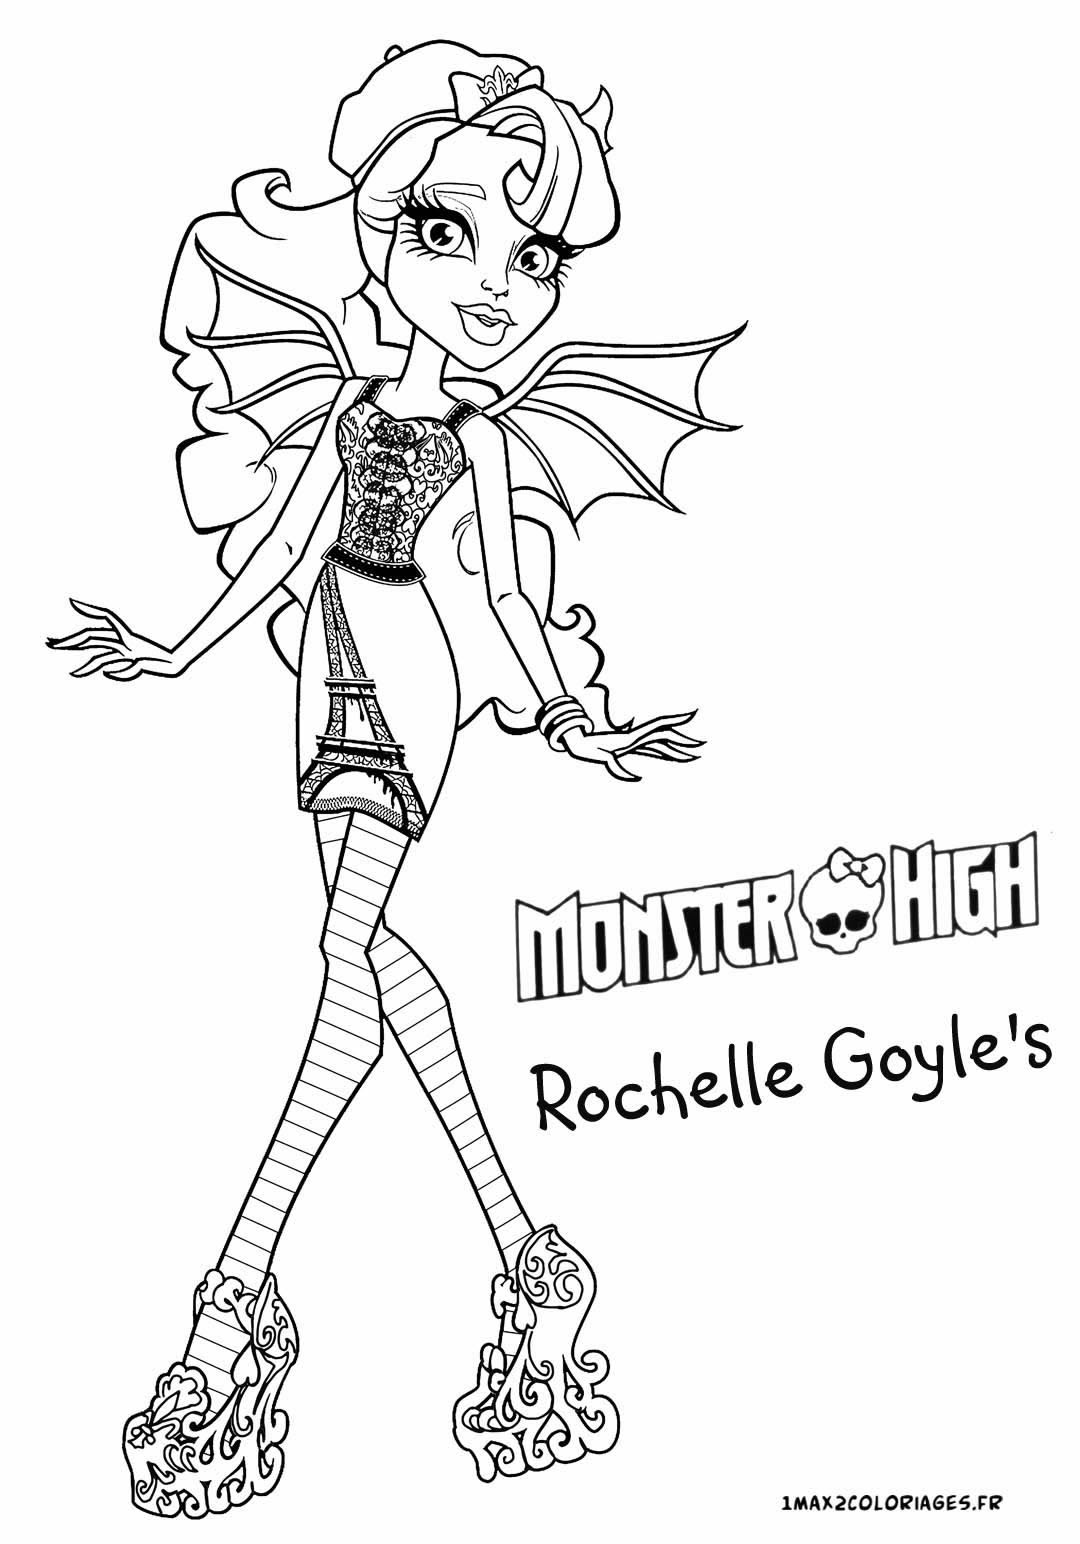 Coloriage des personnages de monster high nouvelle poupee monster rochelle goyle 39 s a imprimer - Comment dessiner une monster high ...